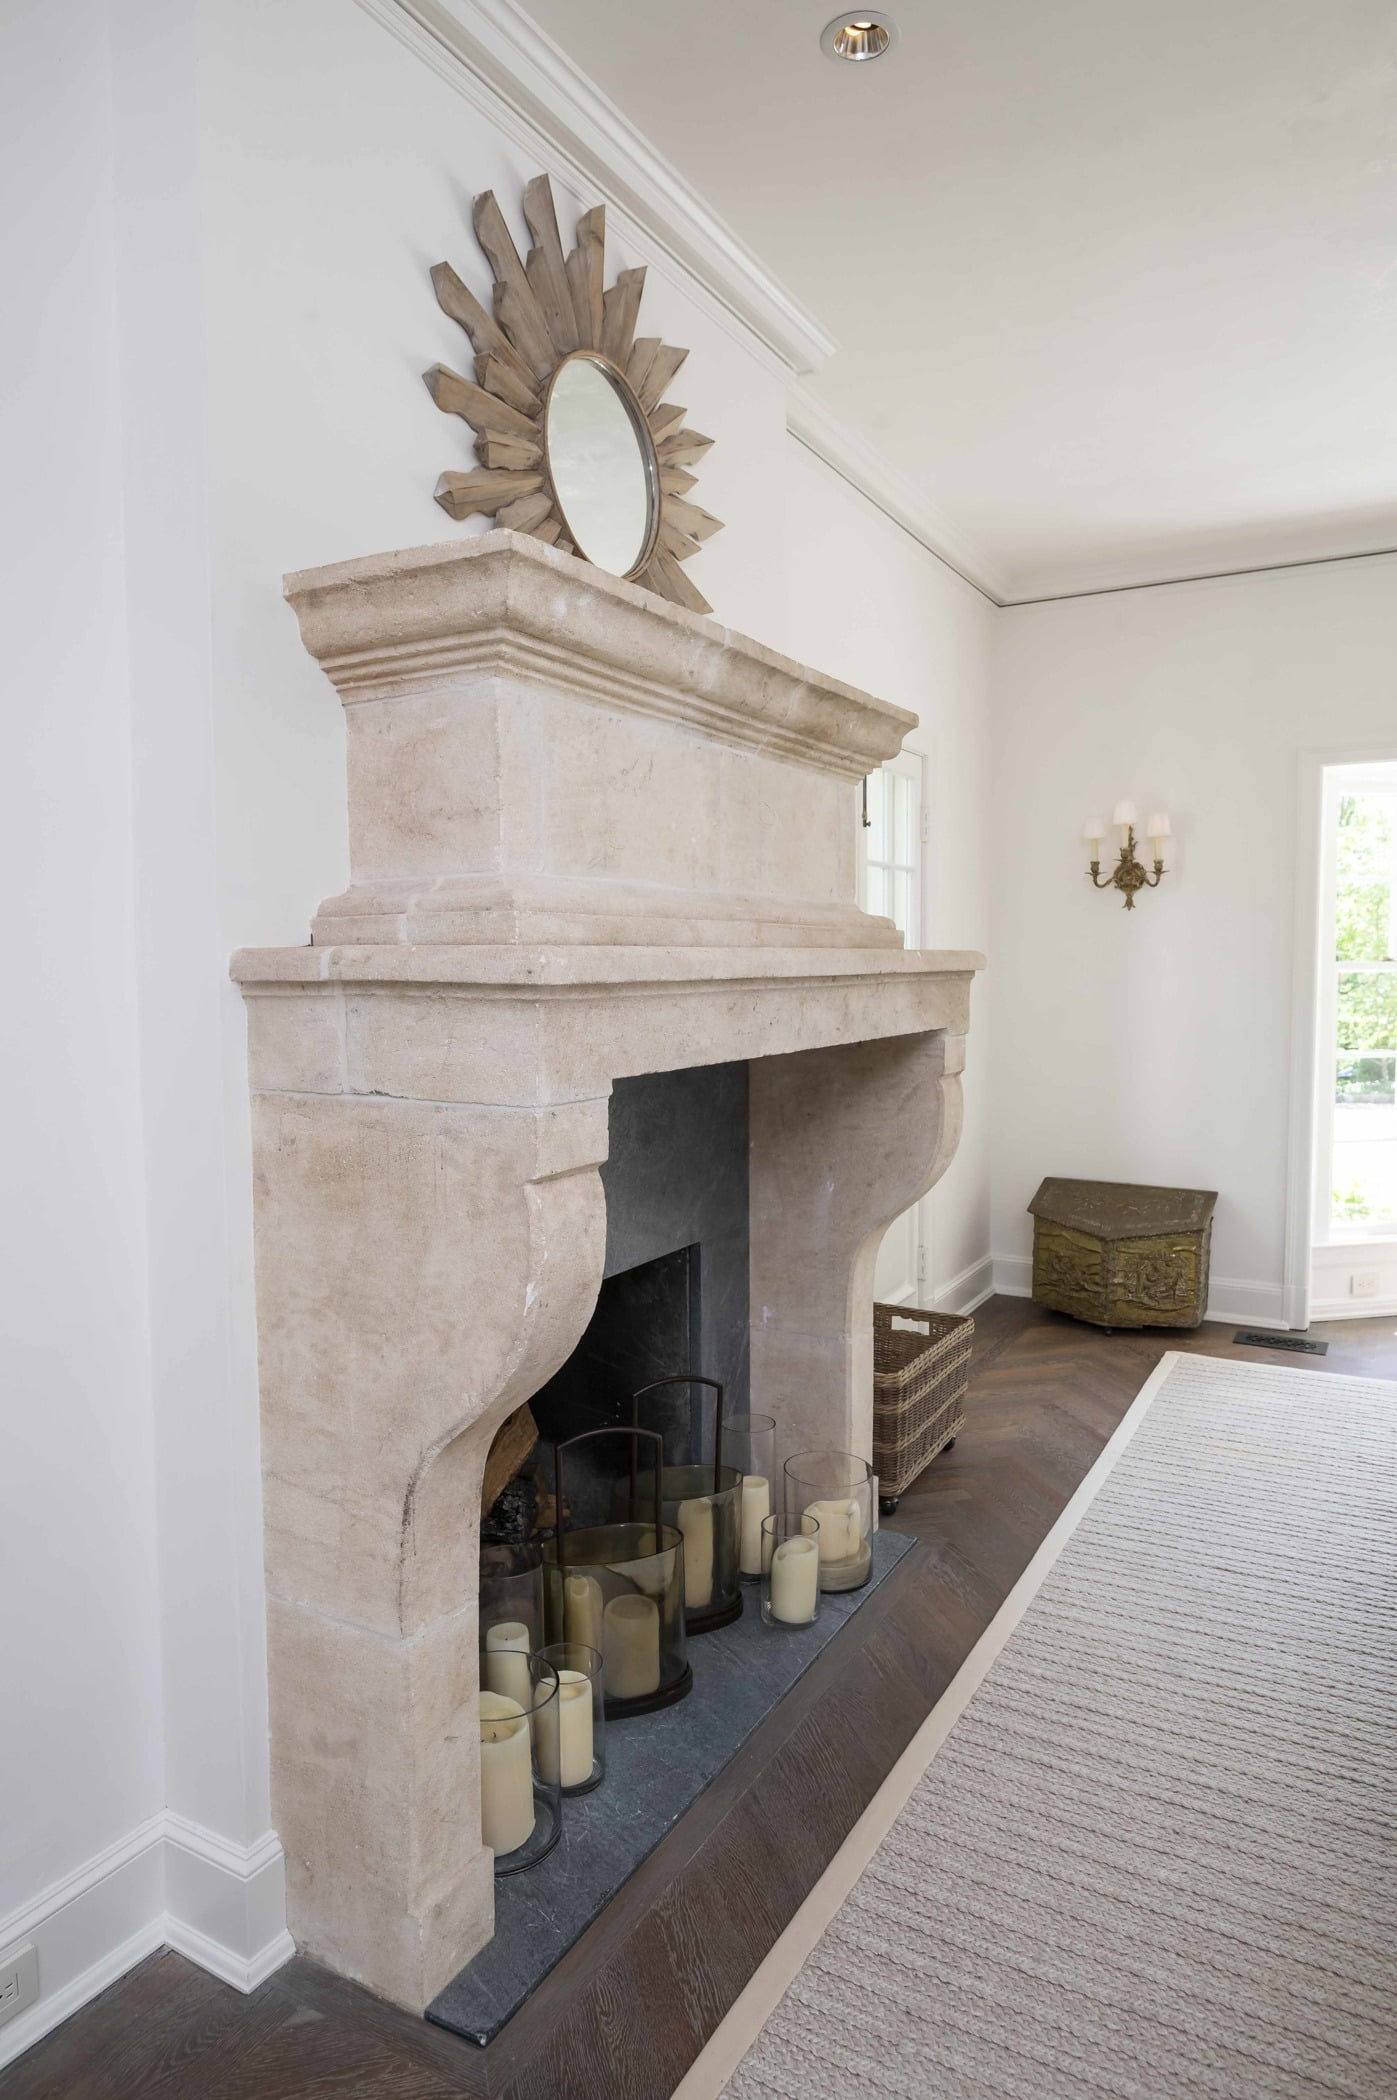 Decorative stone fireplace and sill